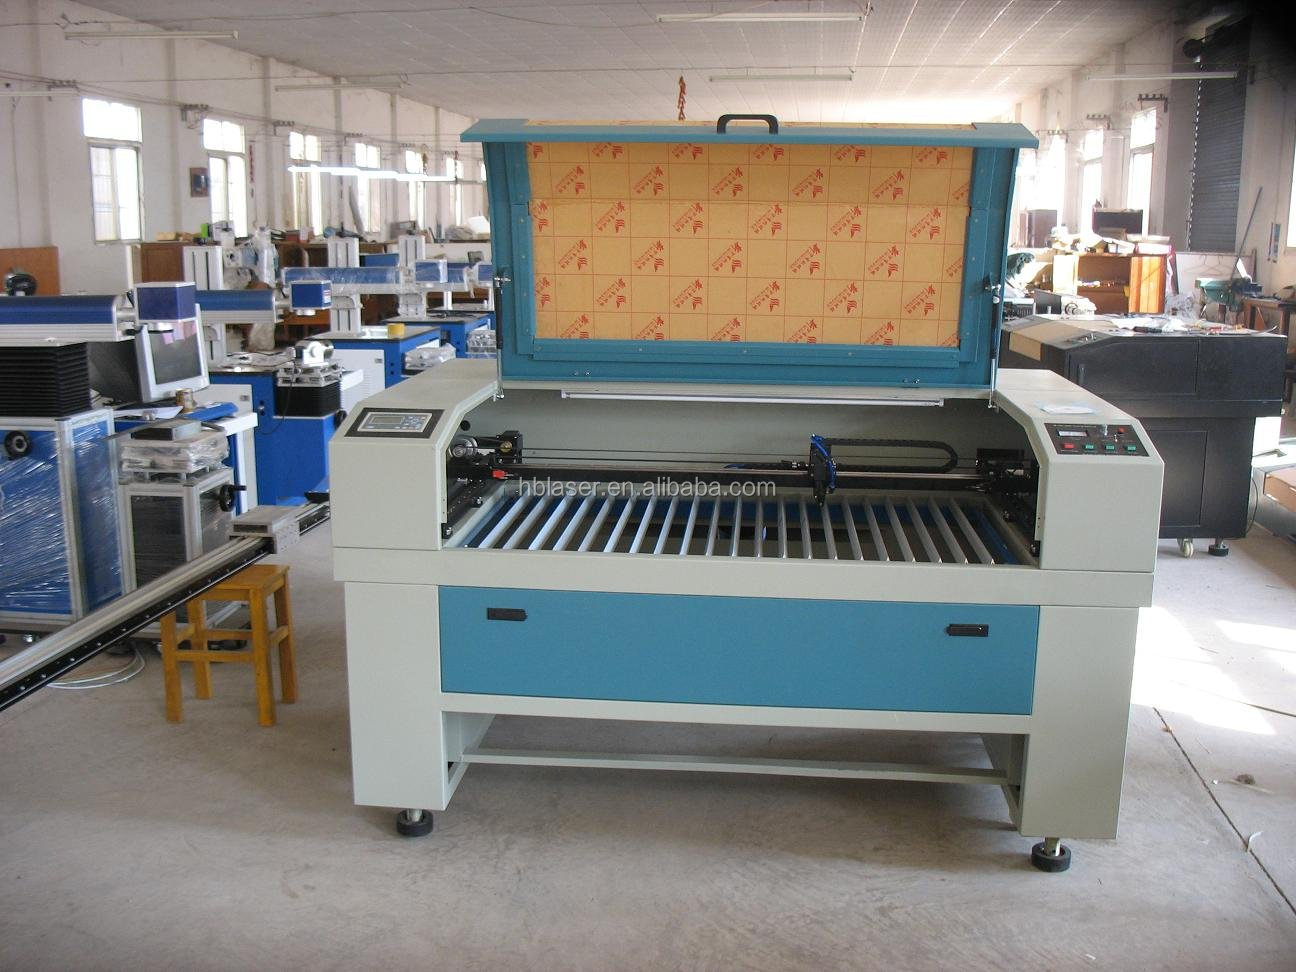 Rubber bands laser engraving machine co2 laser engraving machine for rubber wood